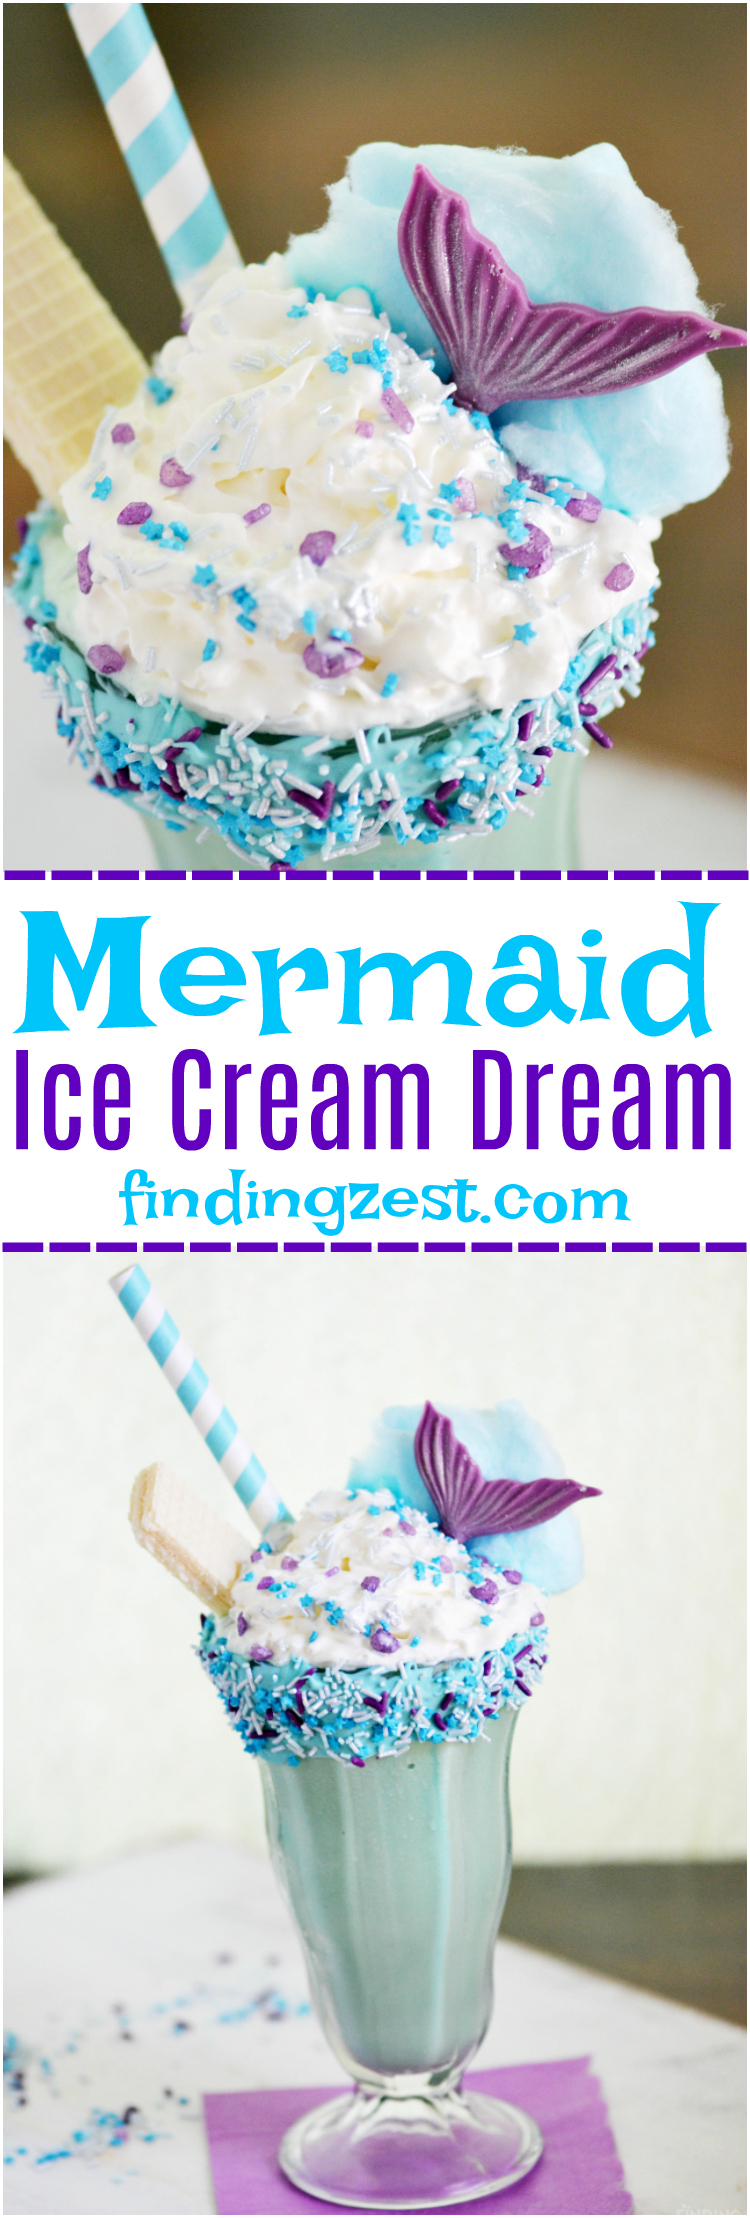 This Mermaid Ice Cream Dream Shake is the perfect dessert for everyday or a mermaid birthday party! Kids will love this fun milkshake!